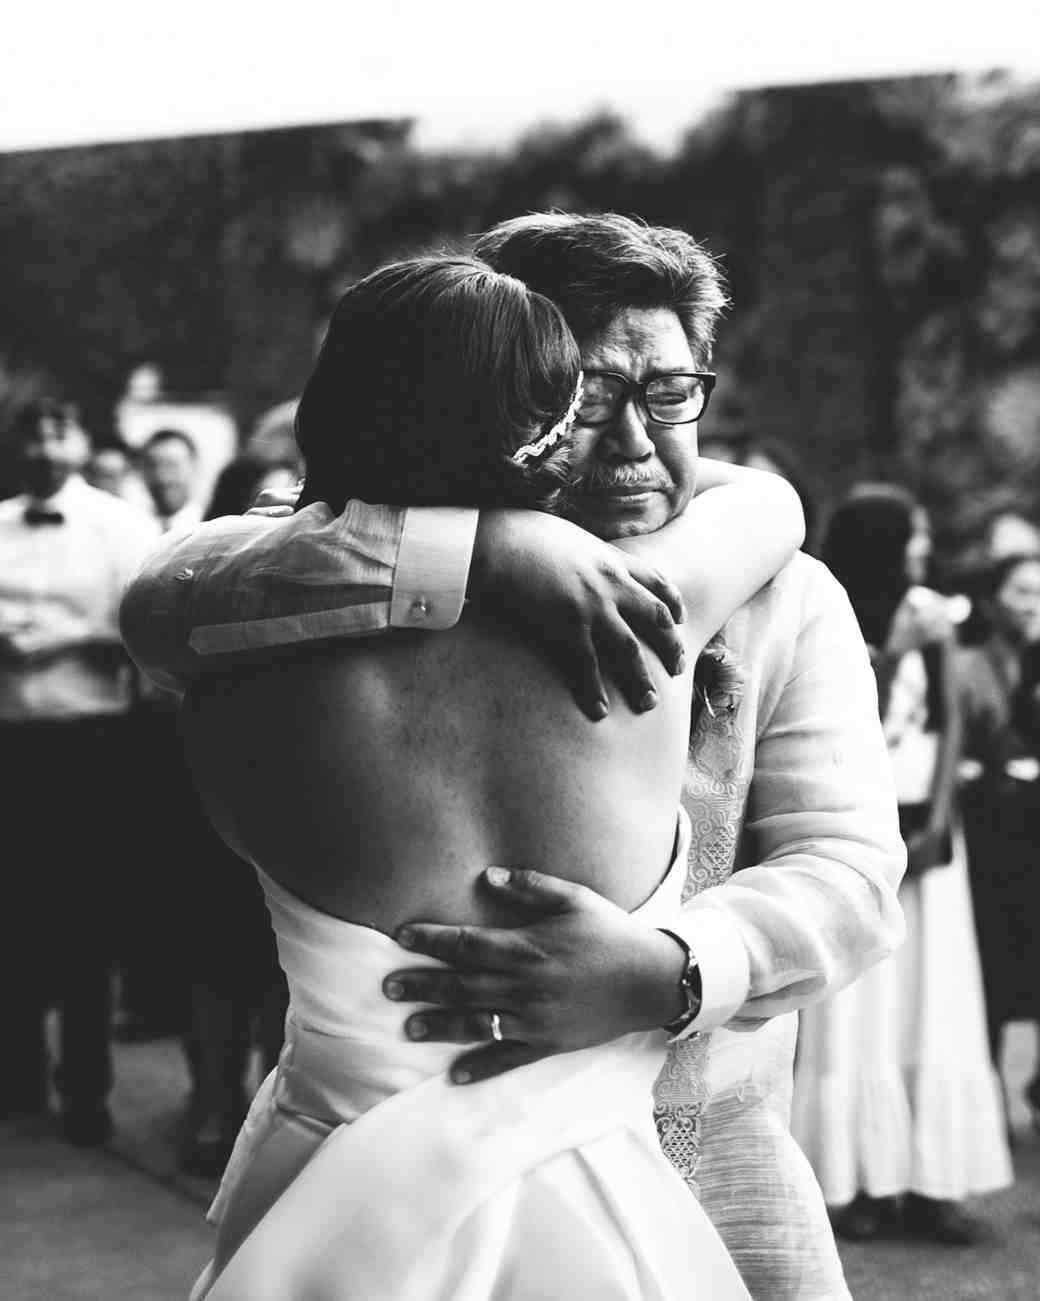 dad daughter wedding moment hug emotional